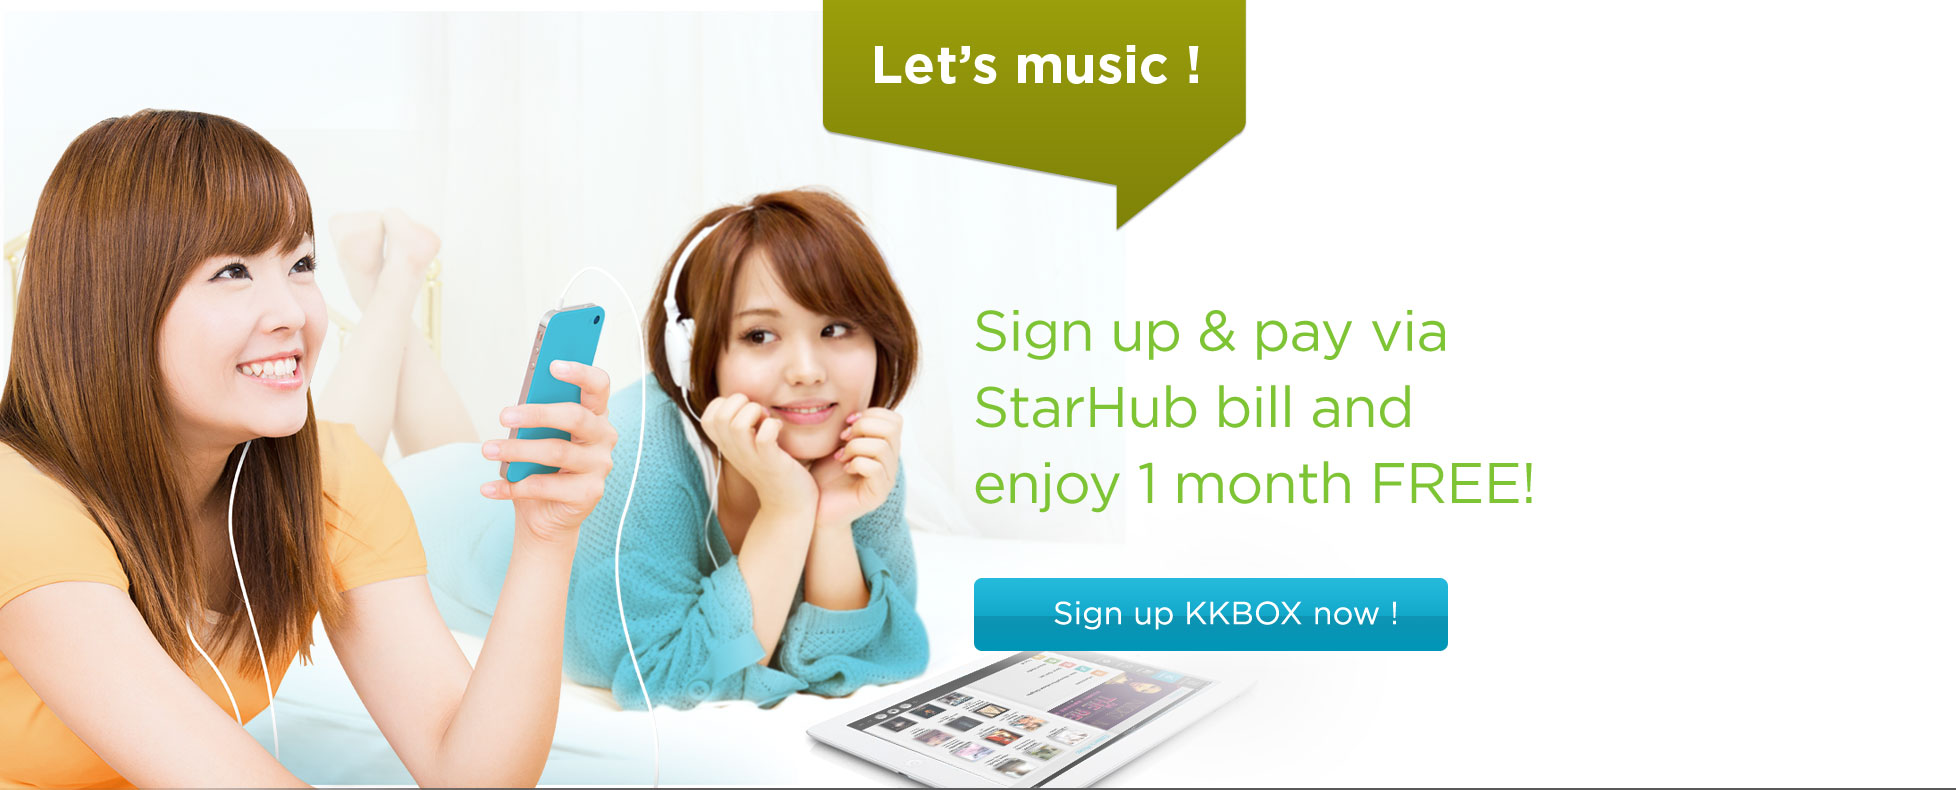 Try KKBOX now